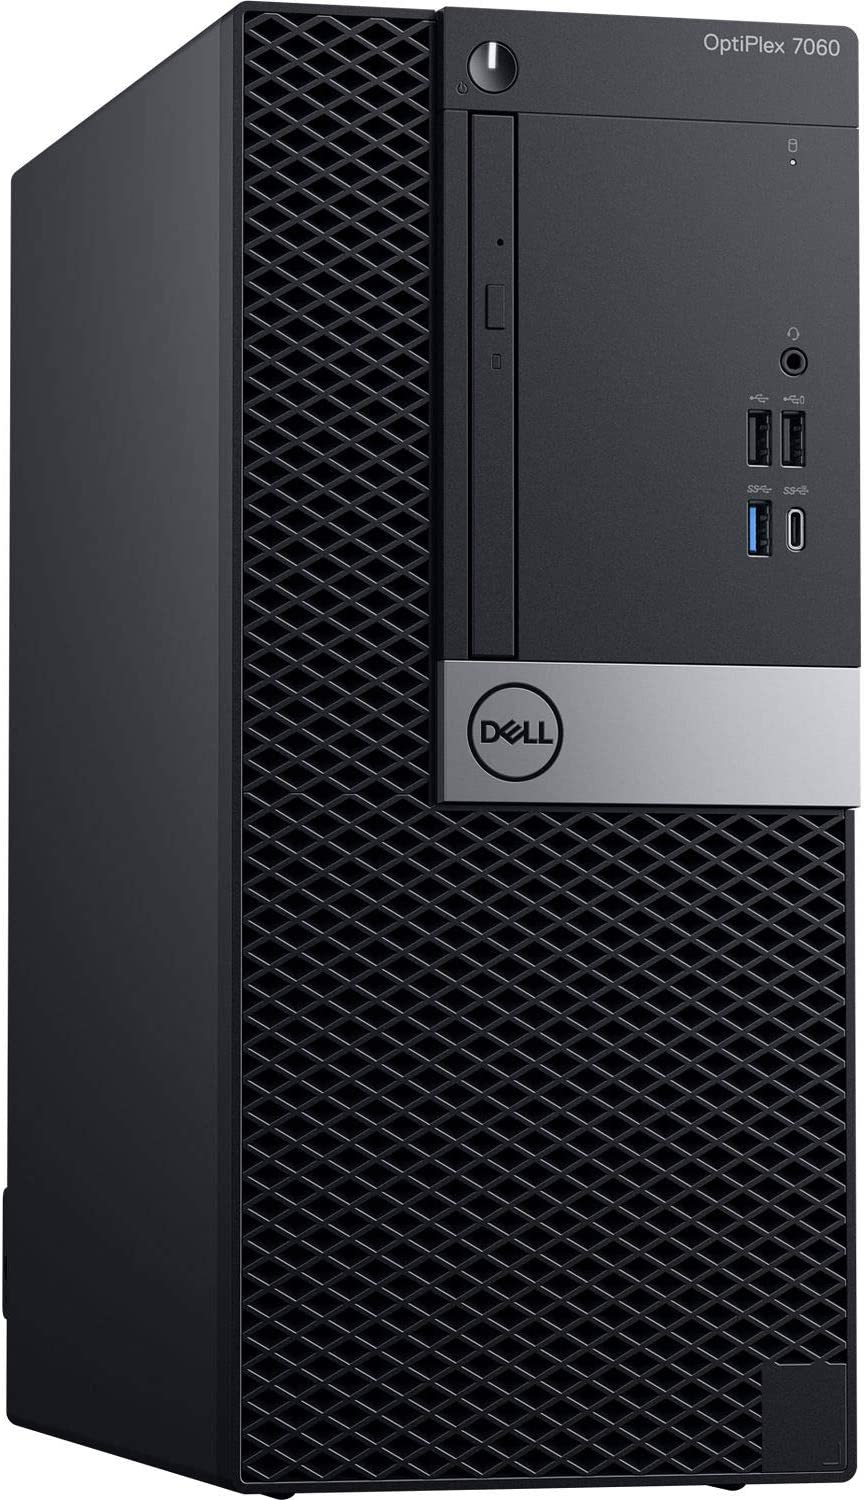 Dell Optiplex 7060 Mini Tower | Intel Quad Core i3-8300 3.7GHz | 4GB DDR4 + 16GB Optane Memory | 500GB HDD | DVD | Windows 10 Pro (Renewed)